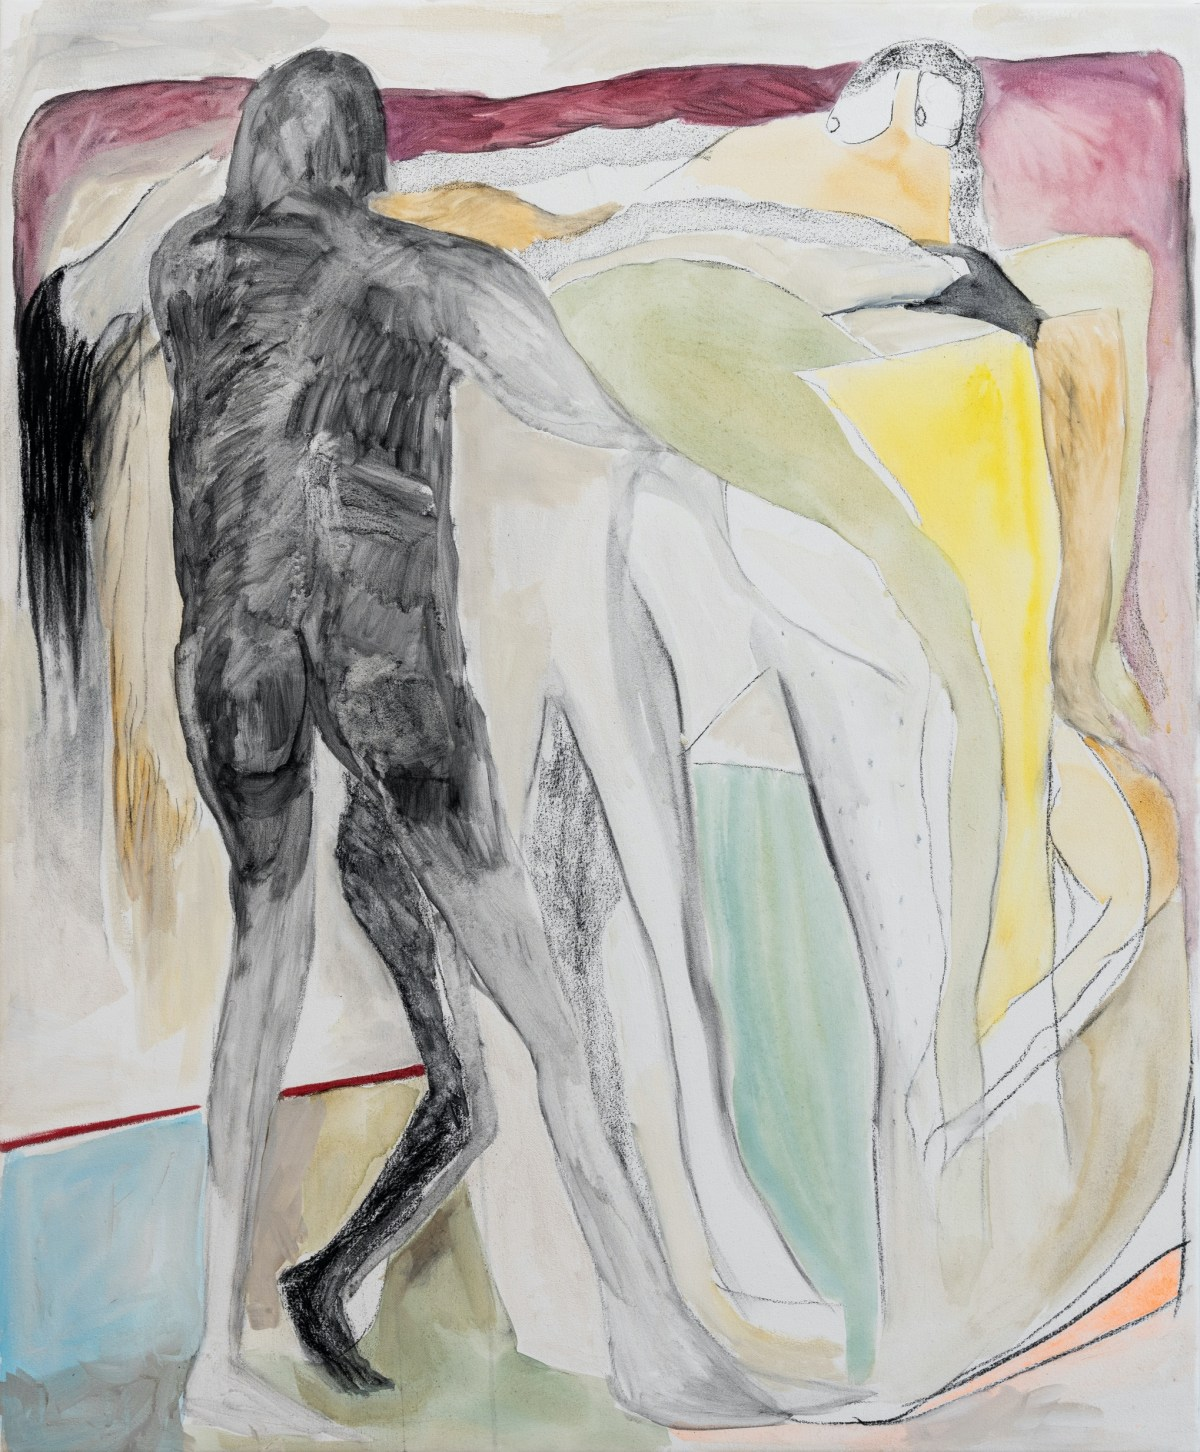 An abstract painting of human figures layered atop one another.